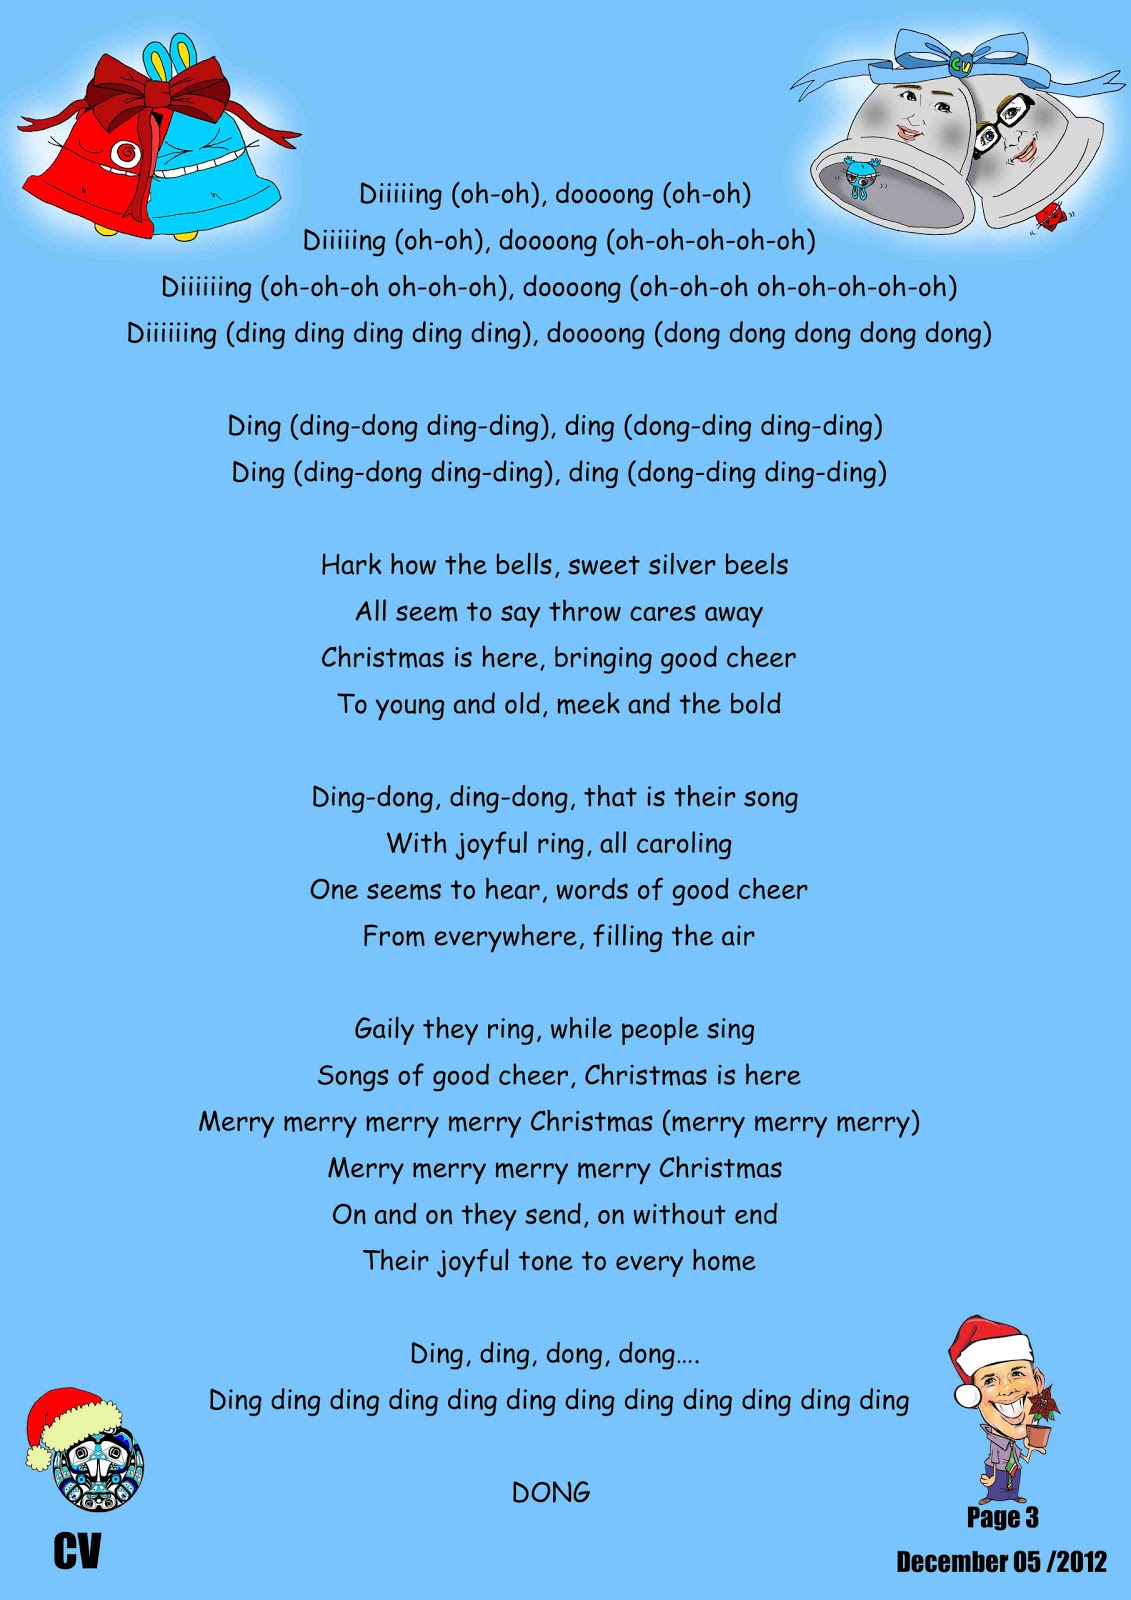 Canadian Voice English School Nagano: Other Christmas Songs ...